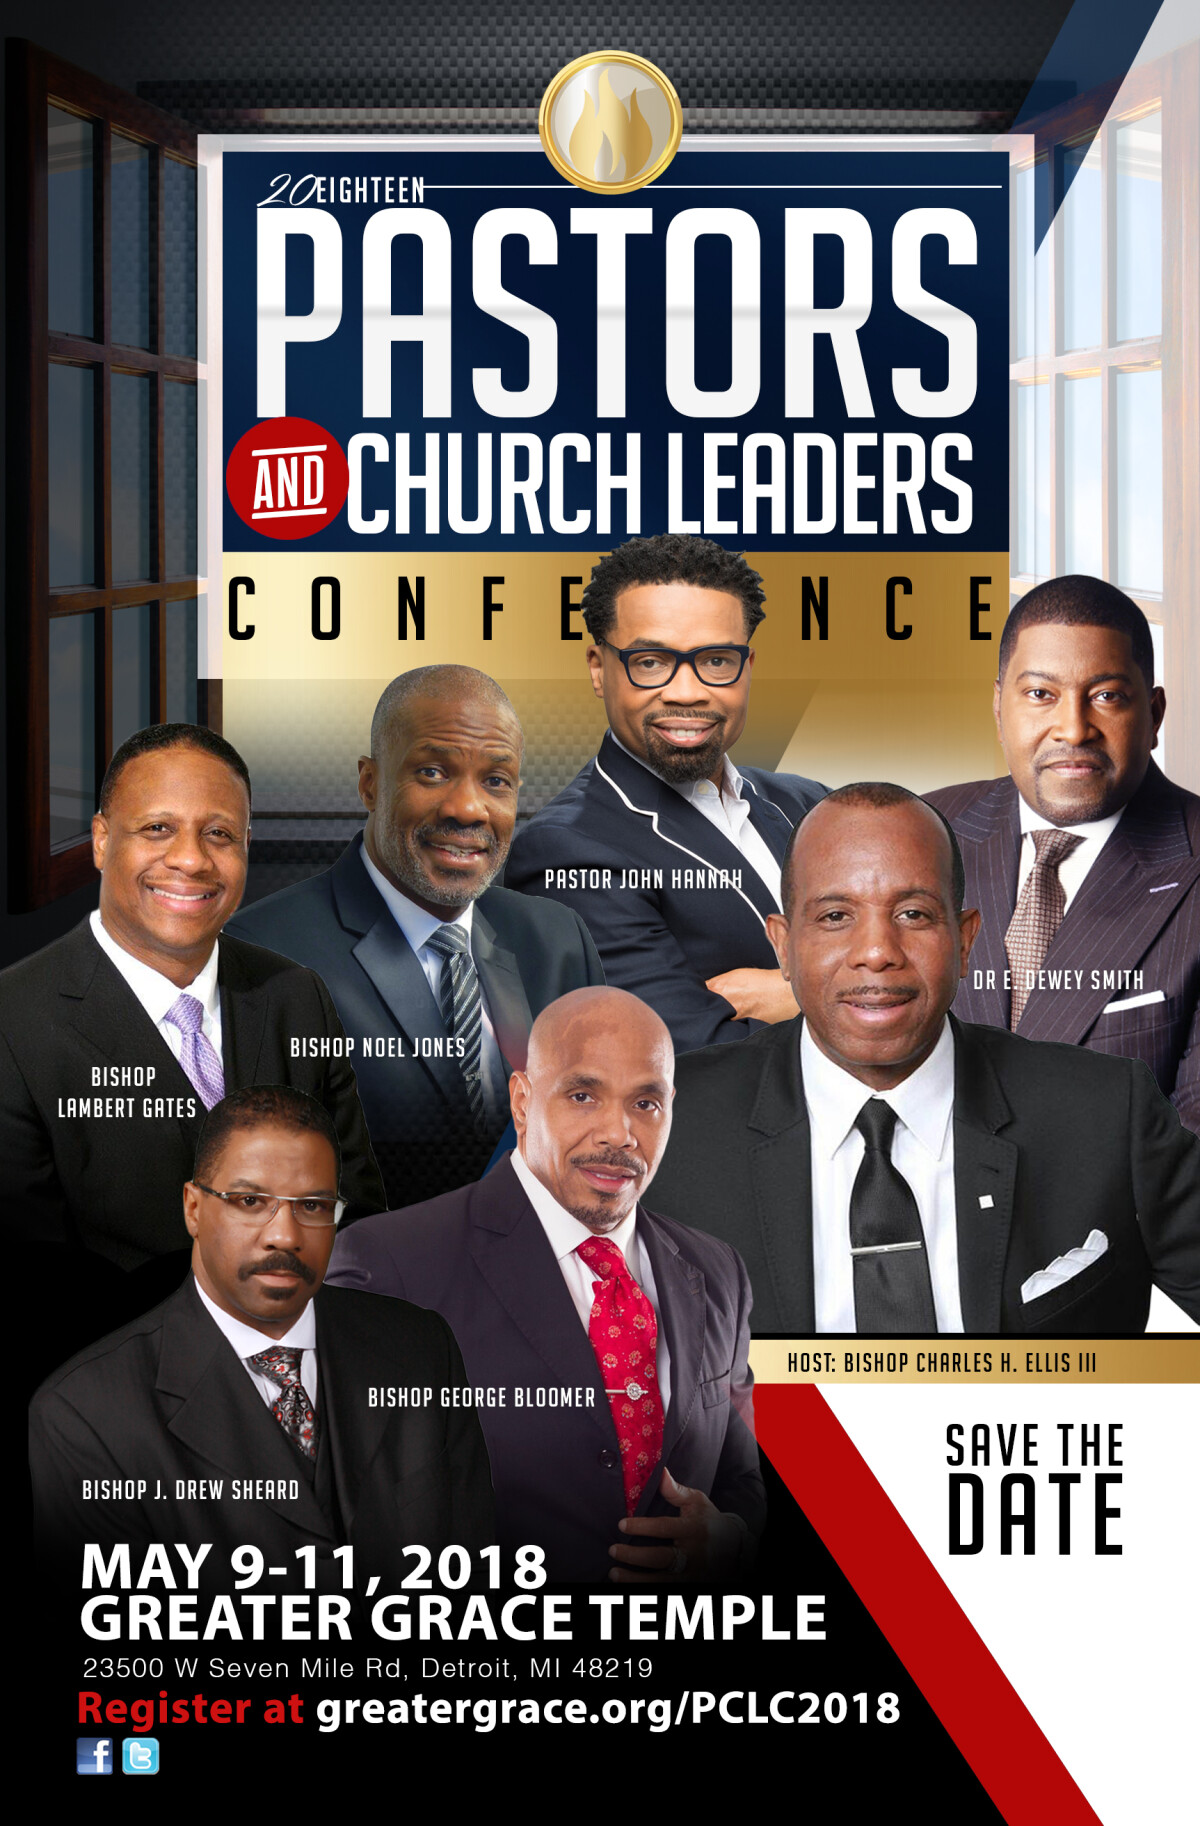 Pastors and Church Leaders' Conference